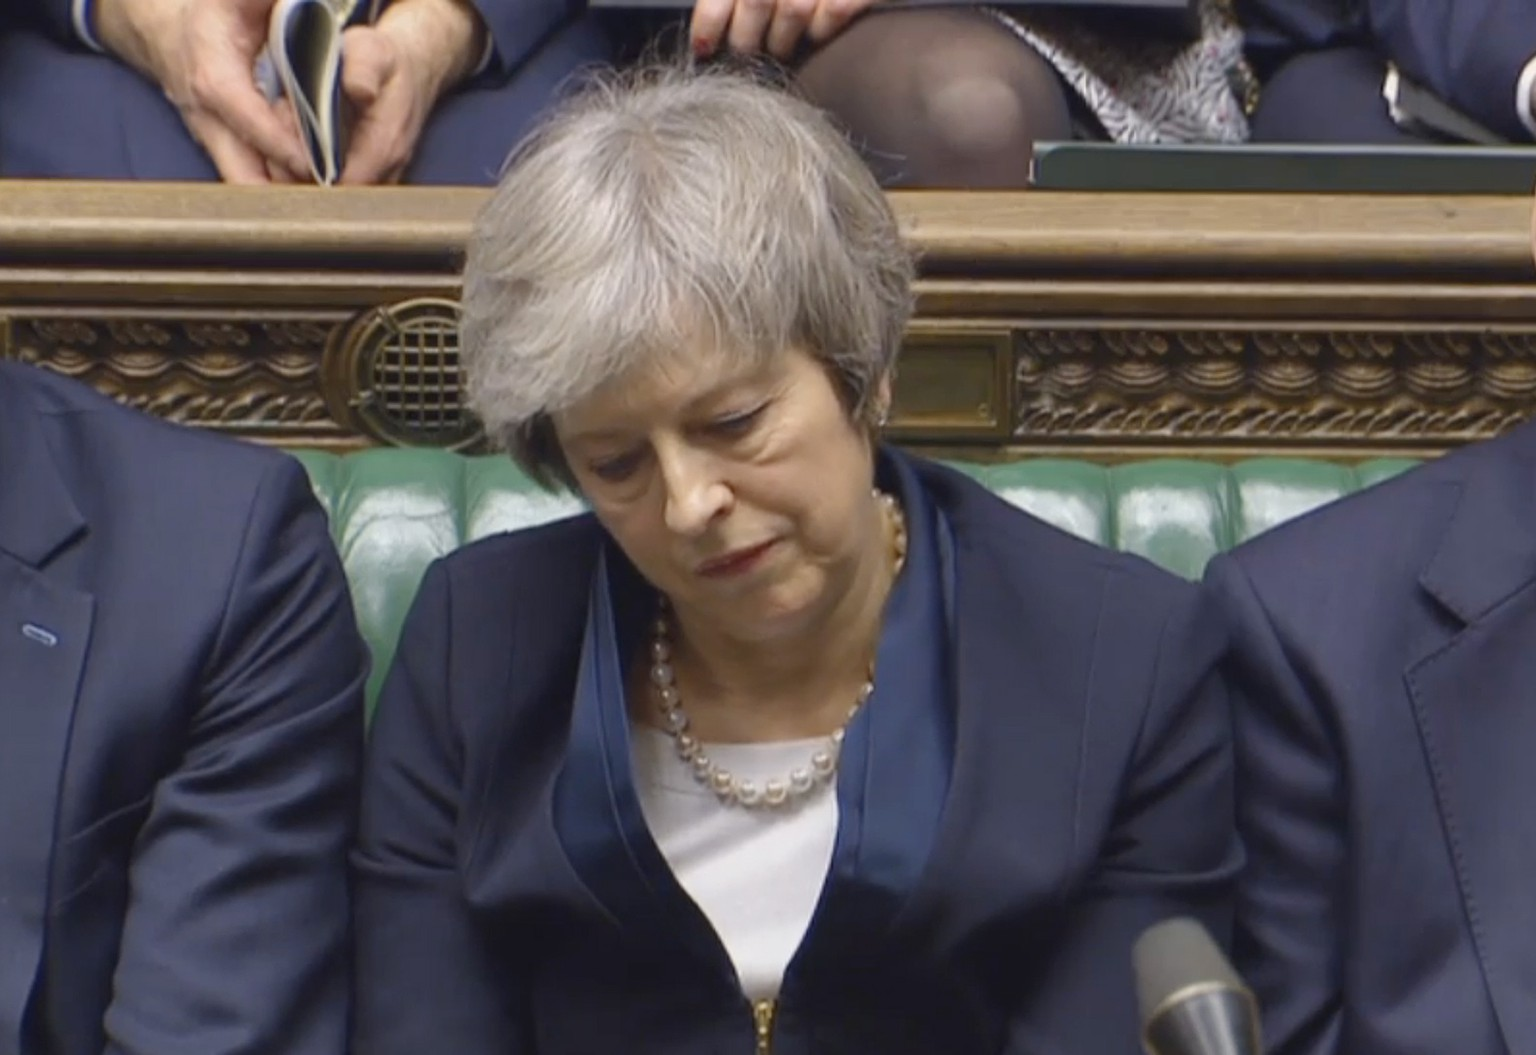 epa07287677 A handout video-grabbed still image from a video made available by UK parliament's parliamentary recording unit showing British  Prime Minister Theresa May after the result of the Brexit vote was announced at the parliament late 15 January 2018, London, United Kingdom. A great majority voted against Prime Minister Theresa May's deal of UK leaving the European Union. The legally-binding Withdrawal Agreement sets up a 'transition or implementation period' that runs until the end of 2020 after Brexit. The United Kingdom, that on 01 January 1973 joined EEC or European Communities, predecessor of European Union, has been a EU member state for 46 years.  EPA/PARLIAMENTARY RECORDING UNIT HANDOUT MANDATORY CREDIT: PARLIAMENTARY RECORDING UNIT HANDOUT EDITORIAL USE ONLY/NO SALES